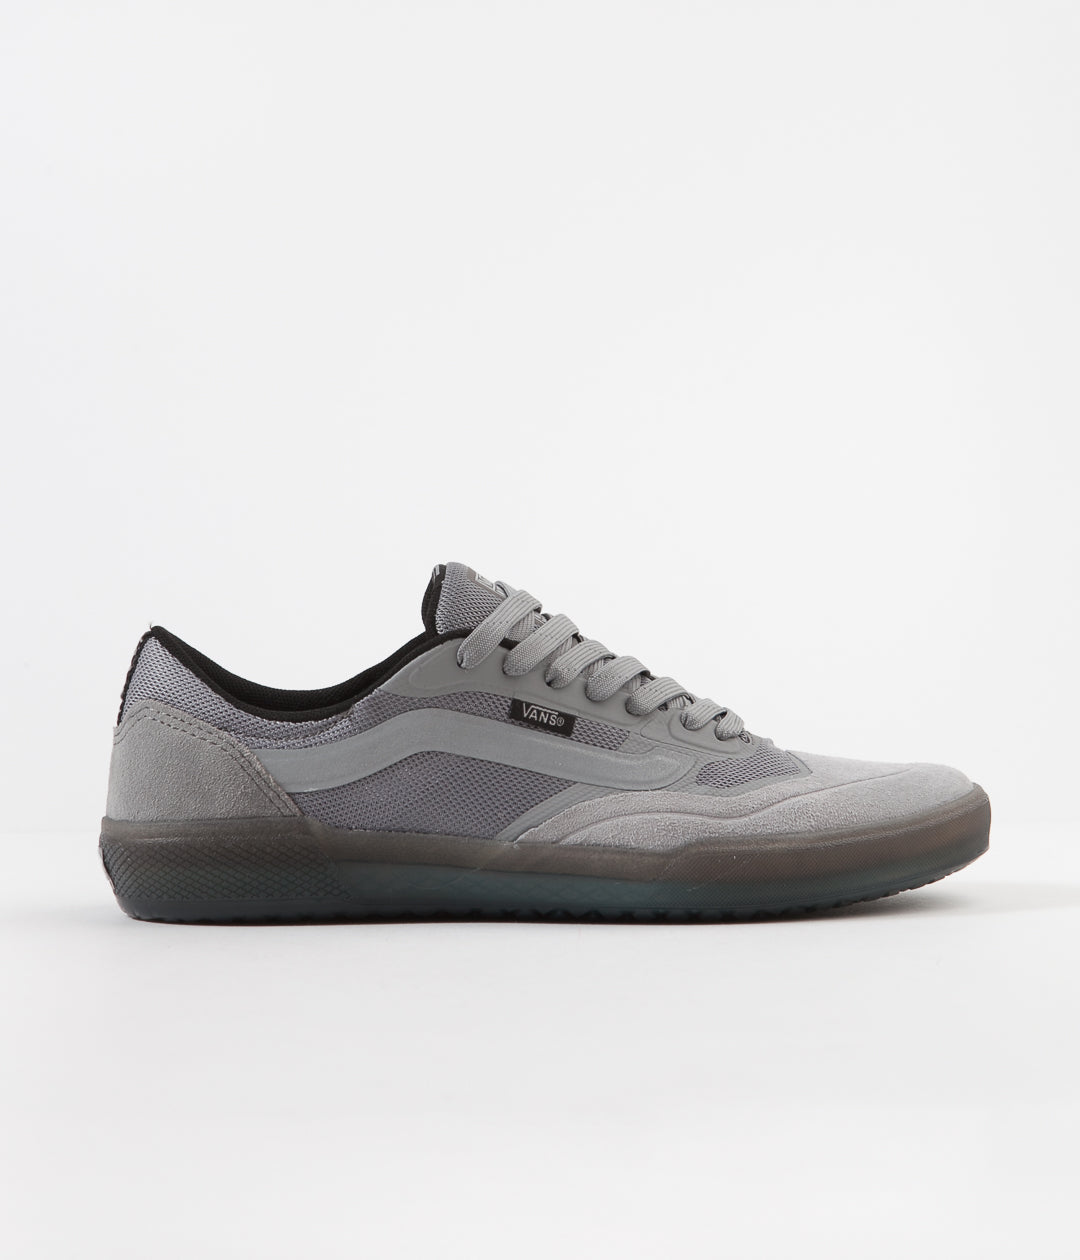 Vans AVE Pro Shoes - (Reflective) Grey